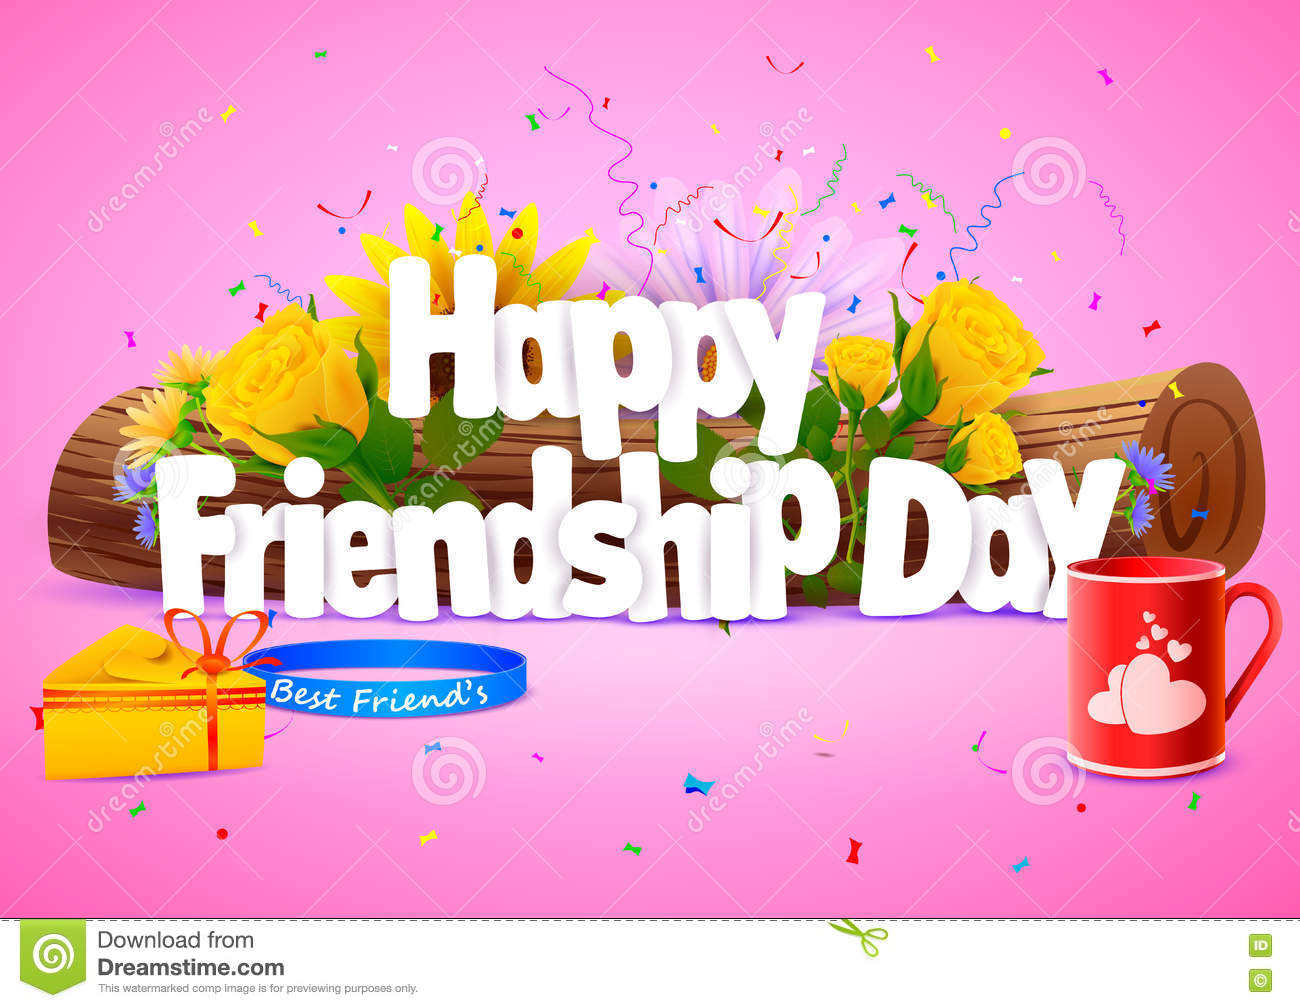 Happy Friendship Day Wallpaper Background Stock Vector